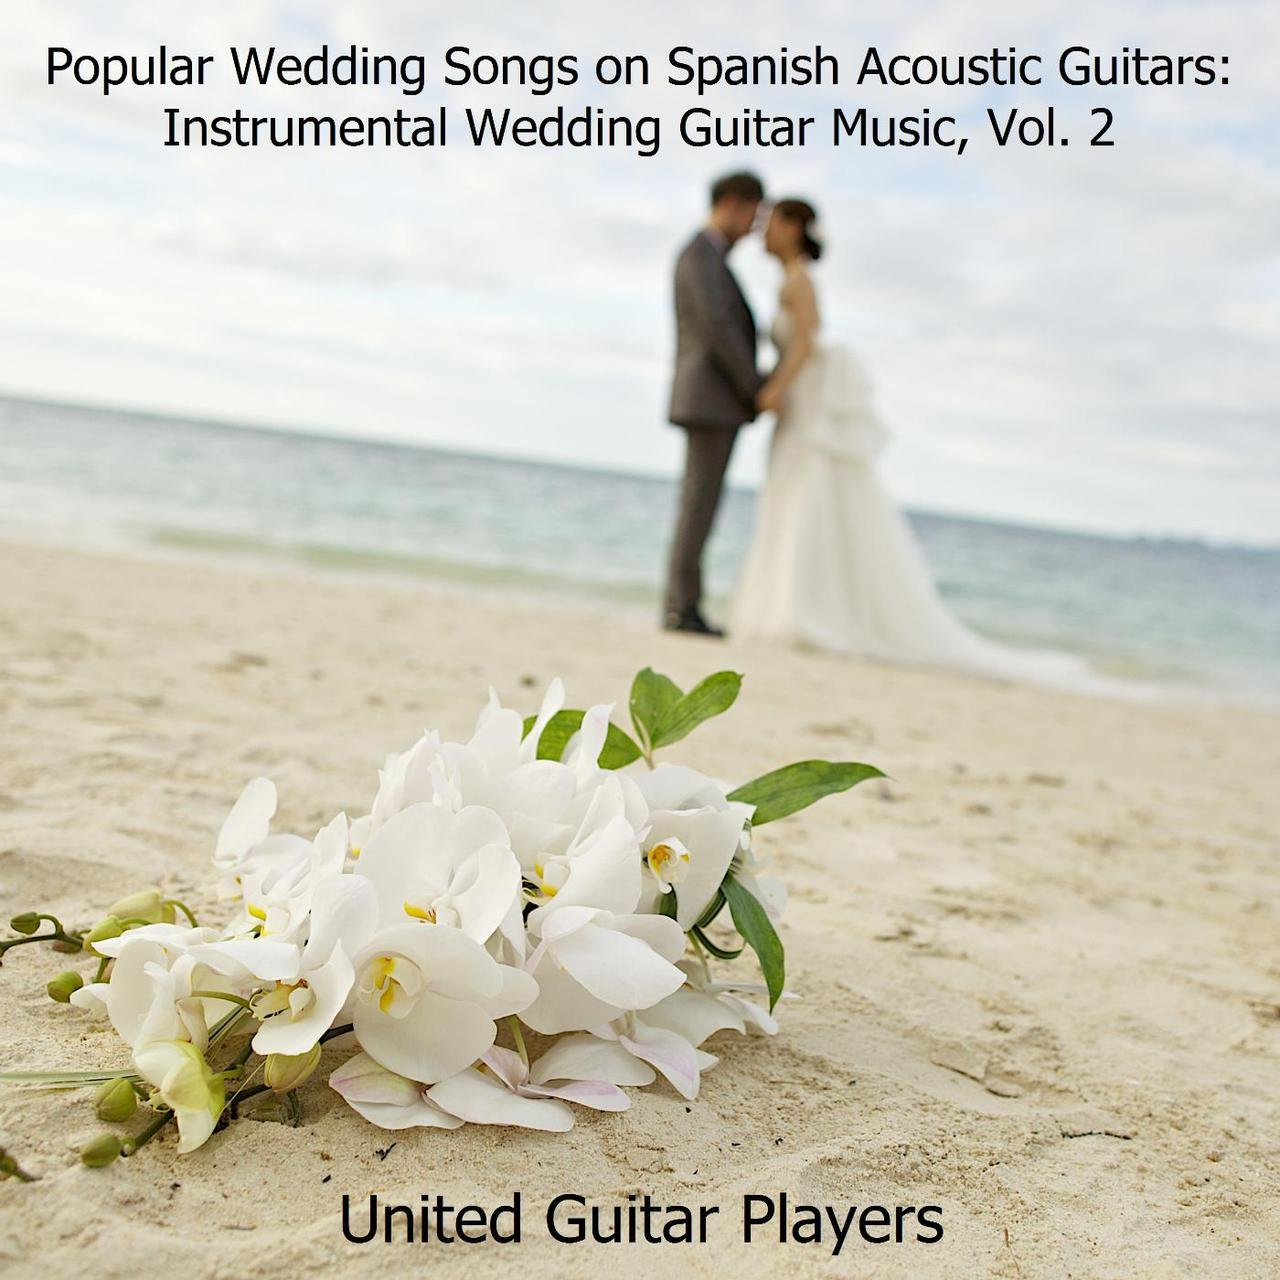 TIDAL Listen To Popular Wedding Songs On Spanish Acoustic Guitars